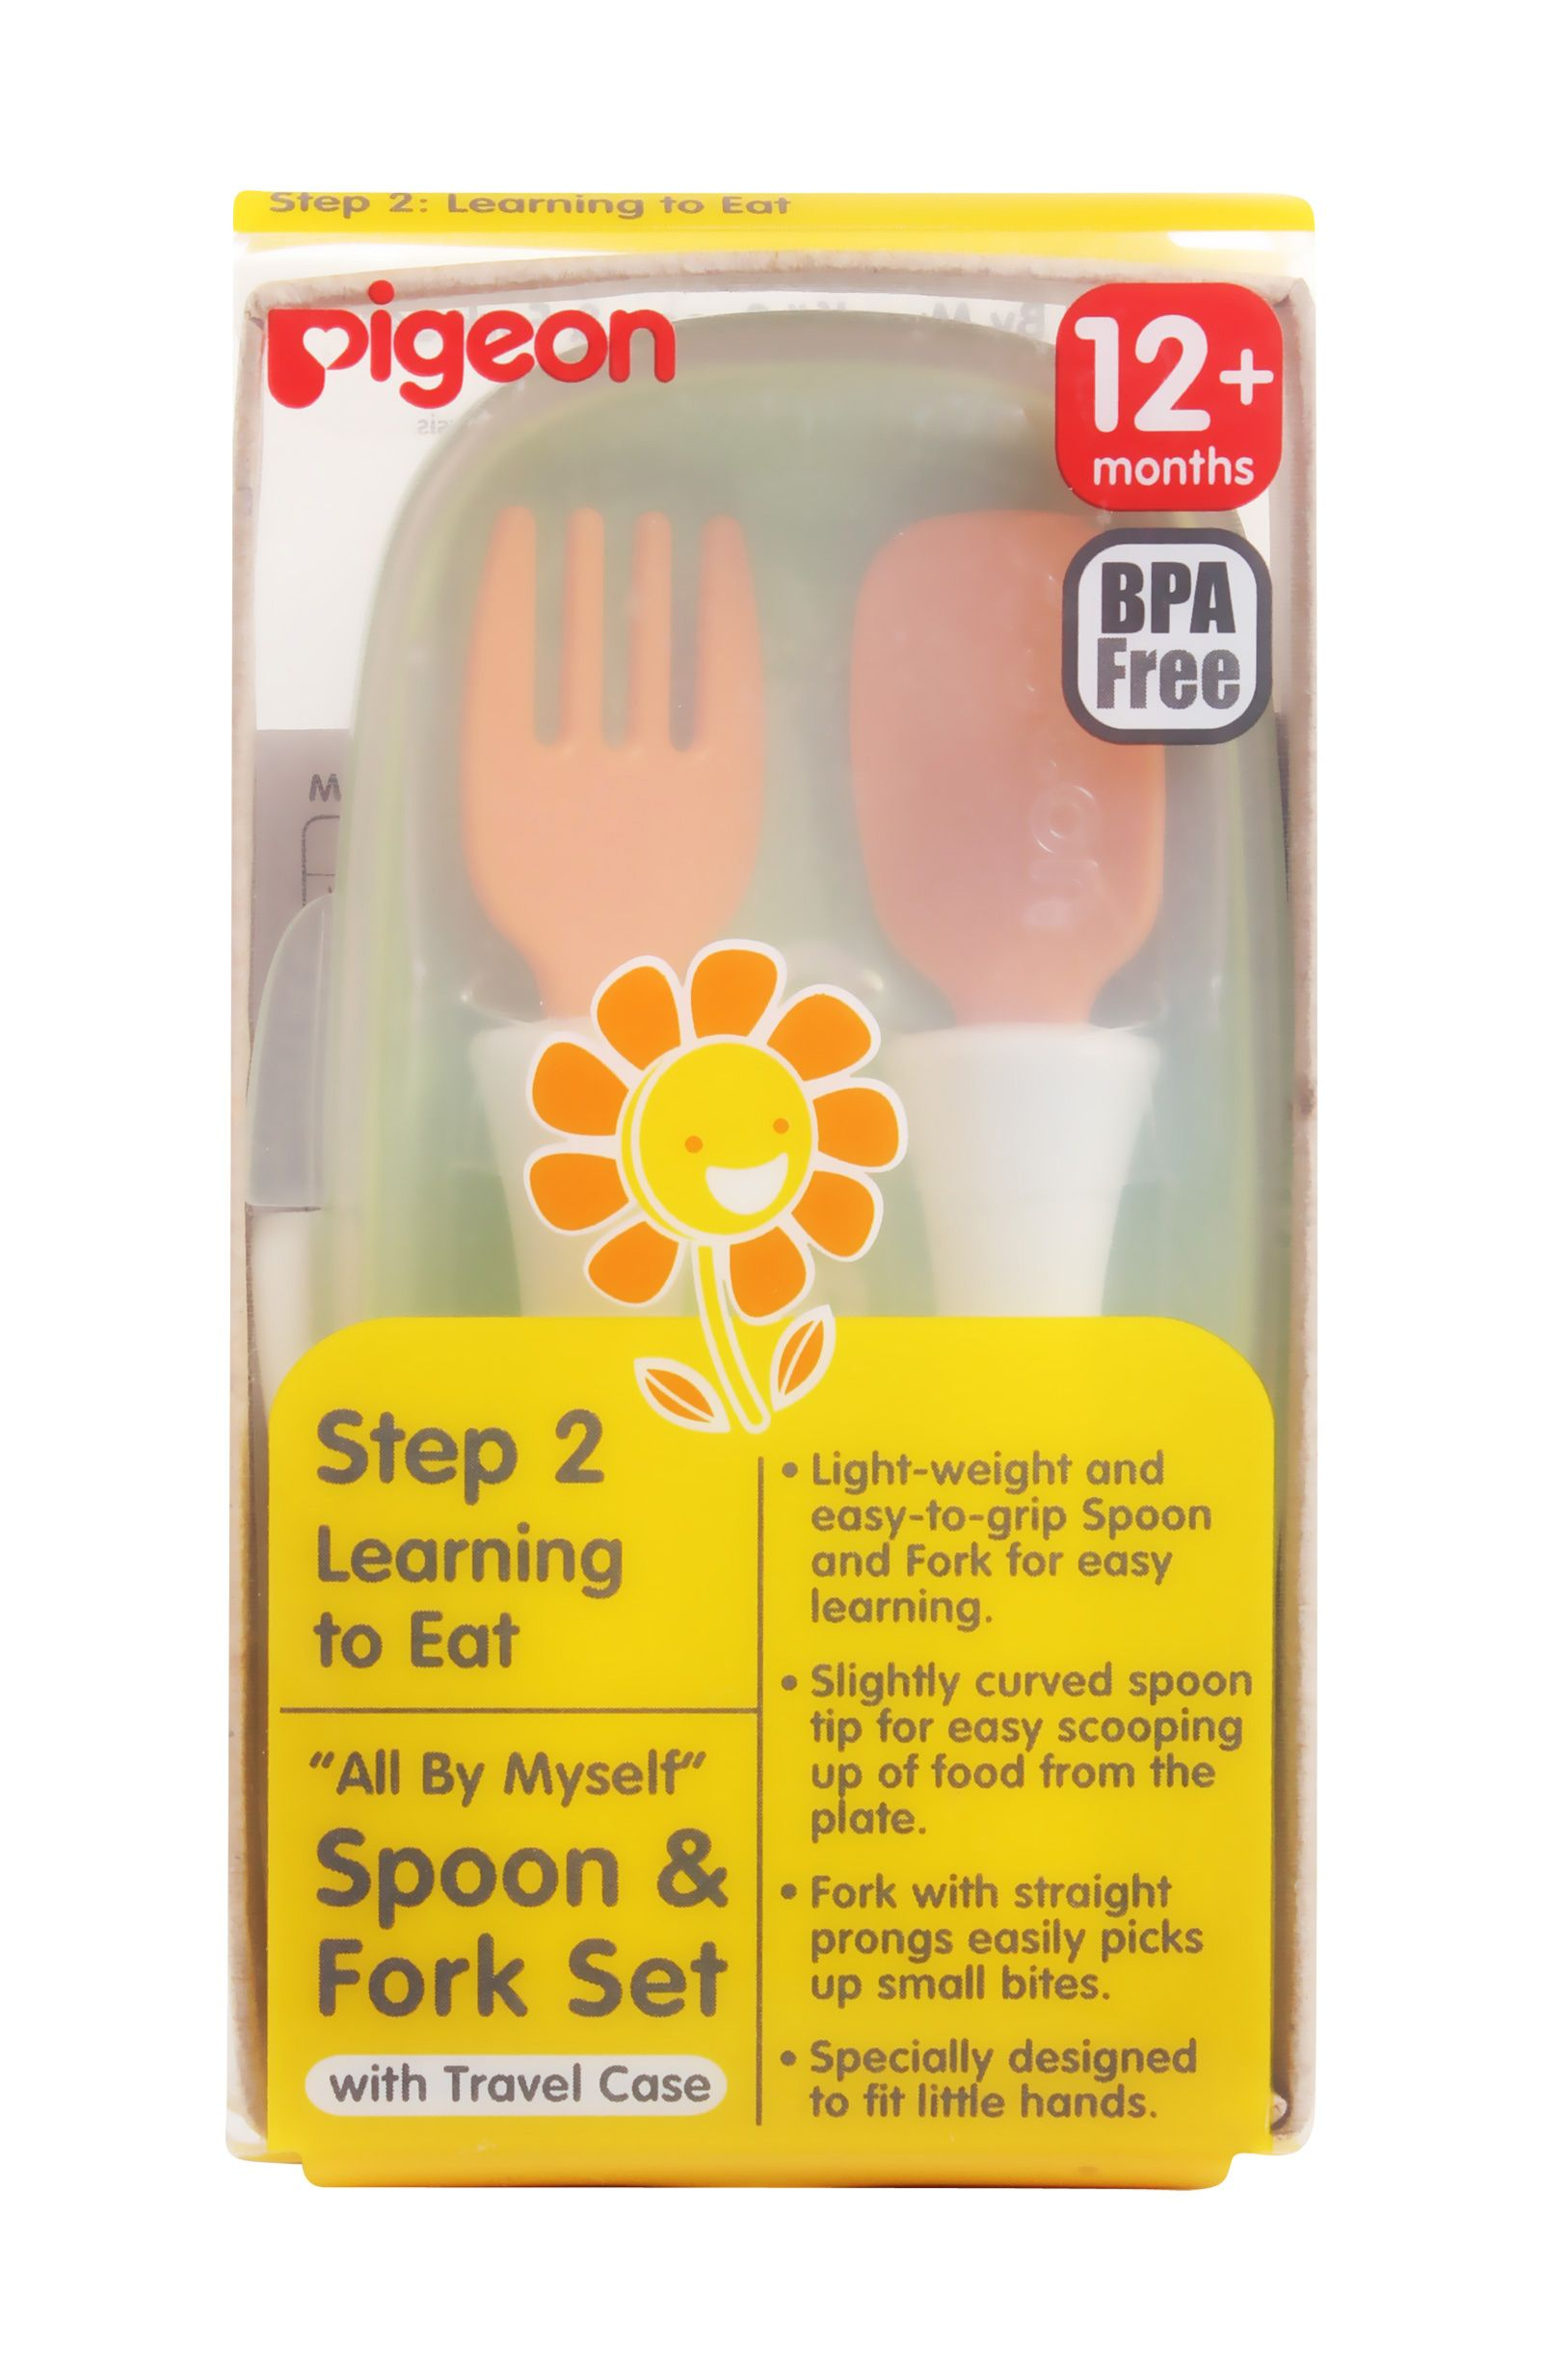 Jual Pigeon Silicone Pacifier Step 3 Yellow Terbaru 2018 2 Isi All By Myself Baby Cutlery Set Price In India On 14 April